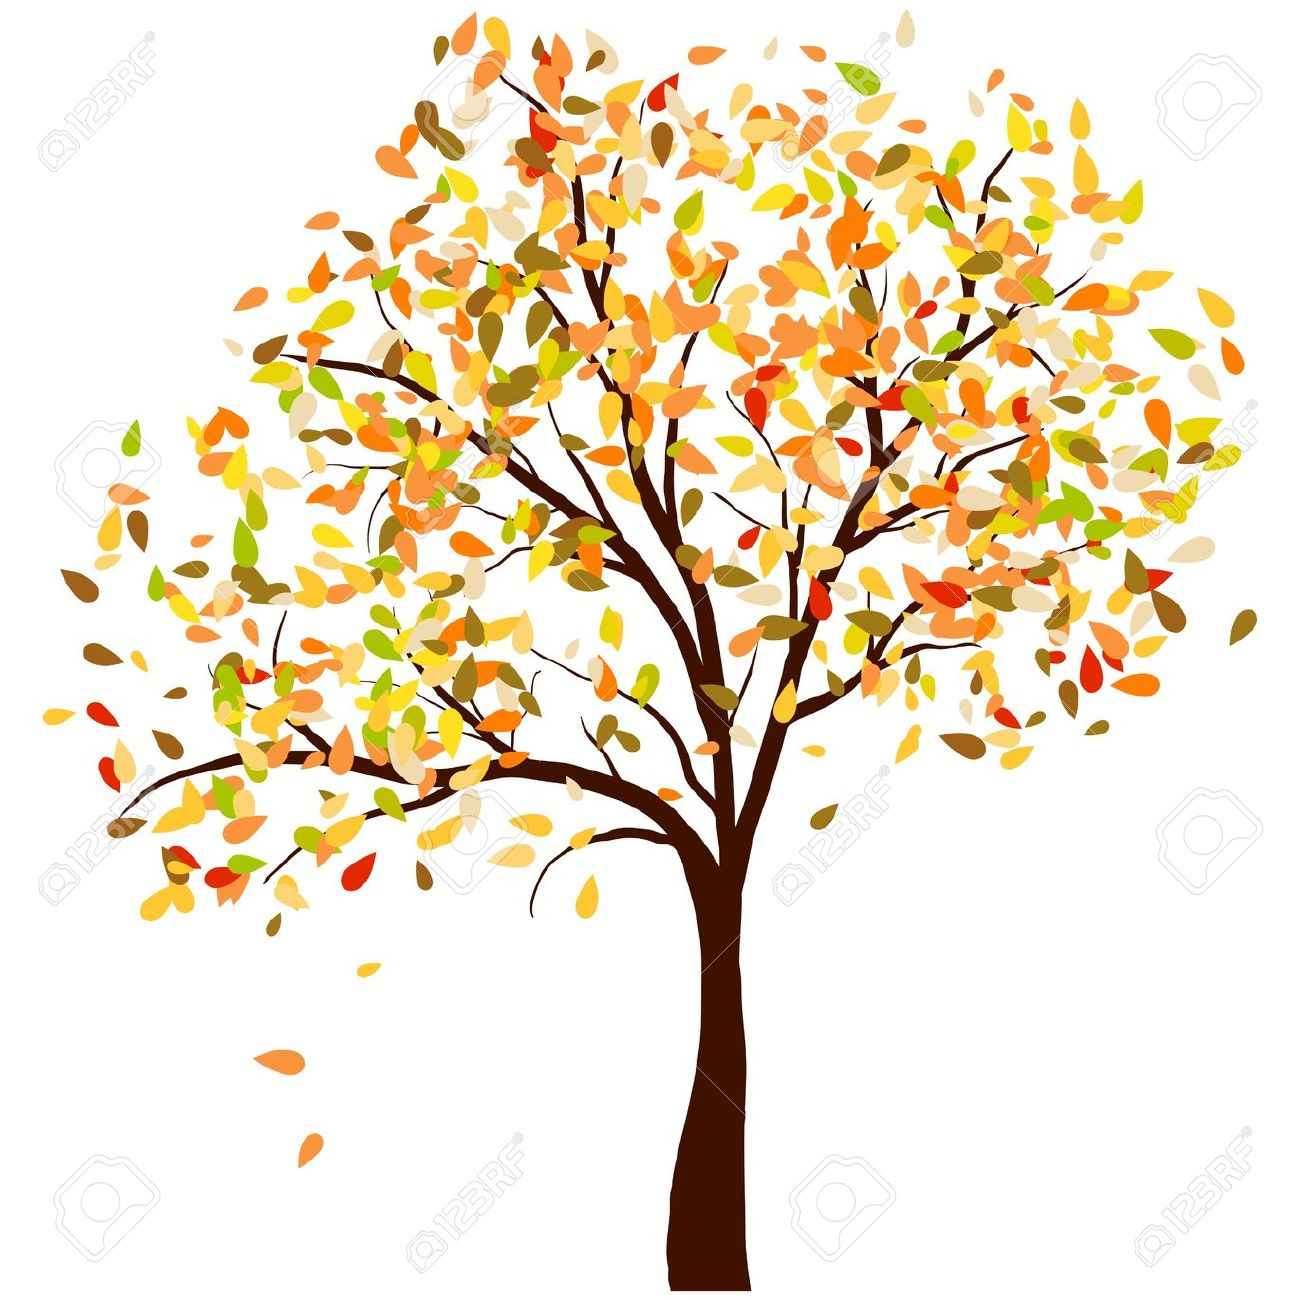 Autumn Birch Tree With Falling Leaves Background. Illustration.